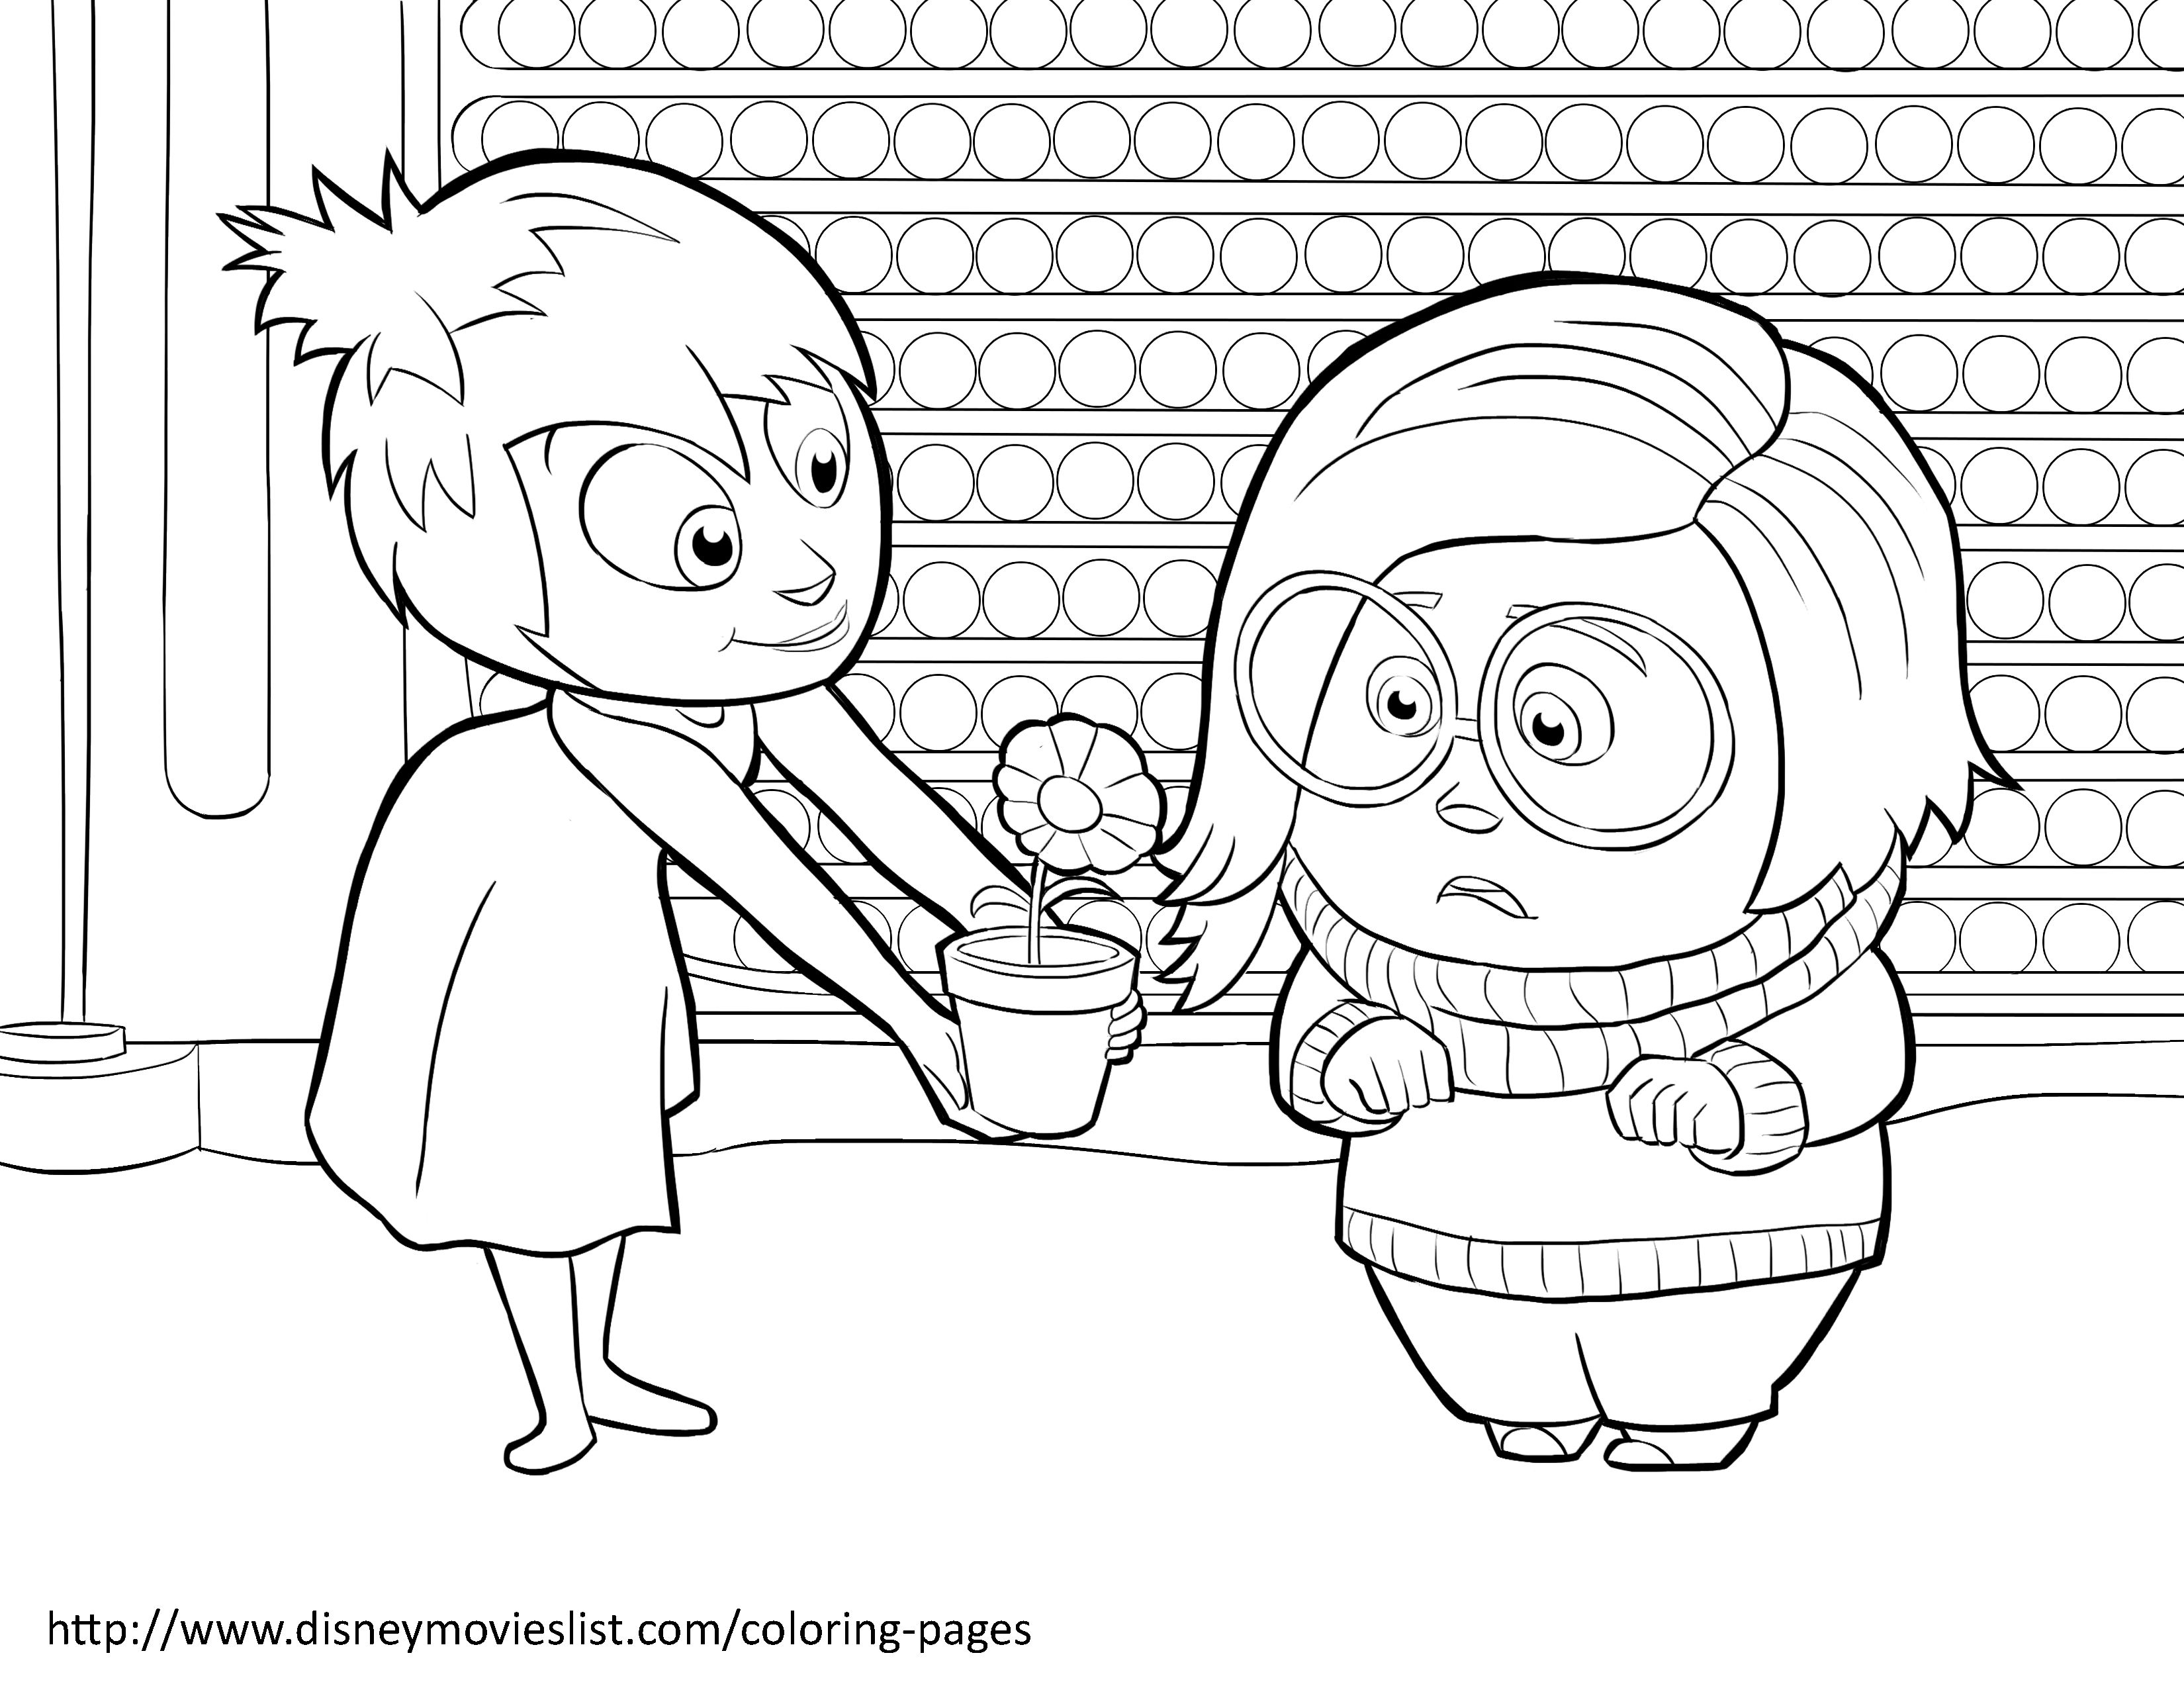 Disney S Inside Out Coloring Pages Sheet Free Disney Printable Inside Out Color Page